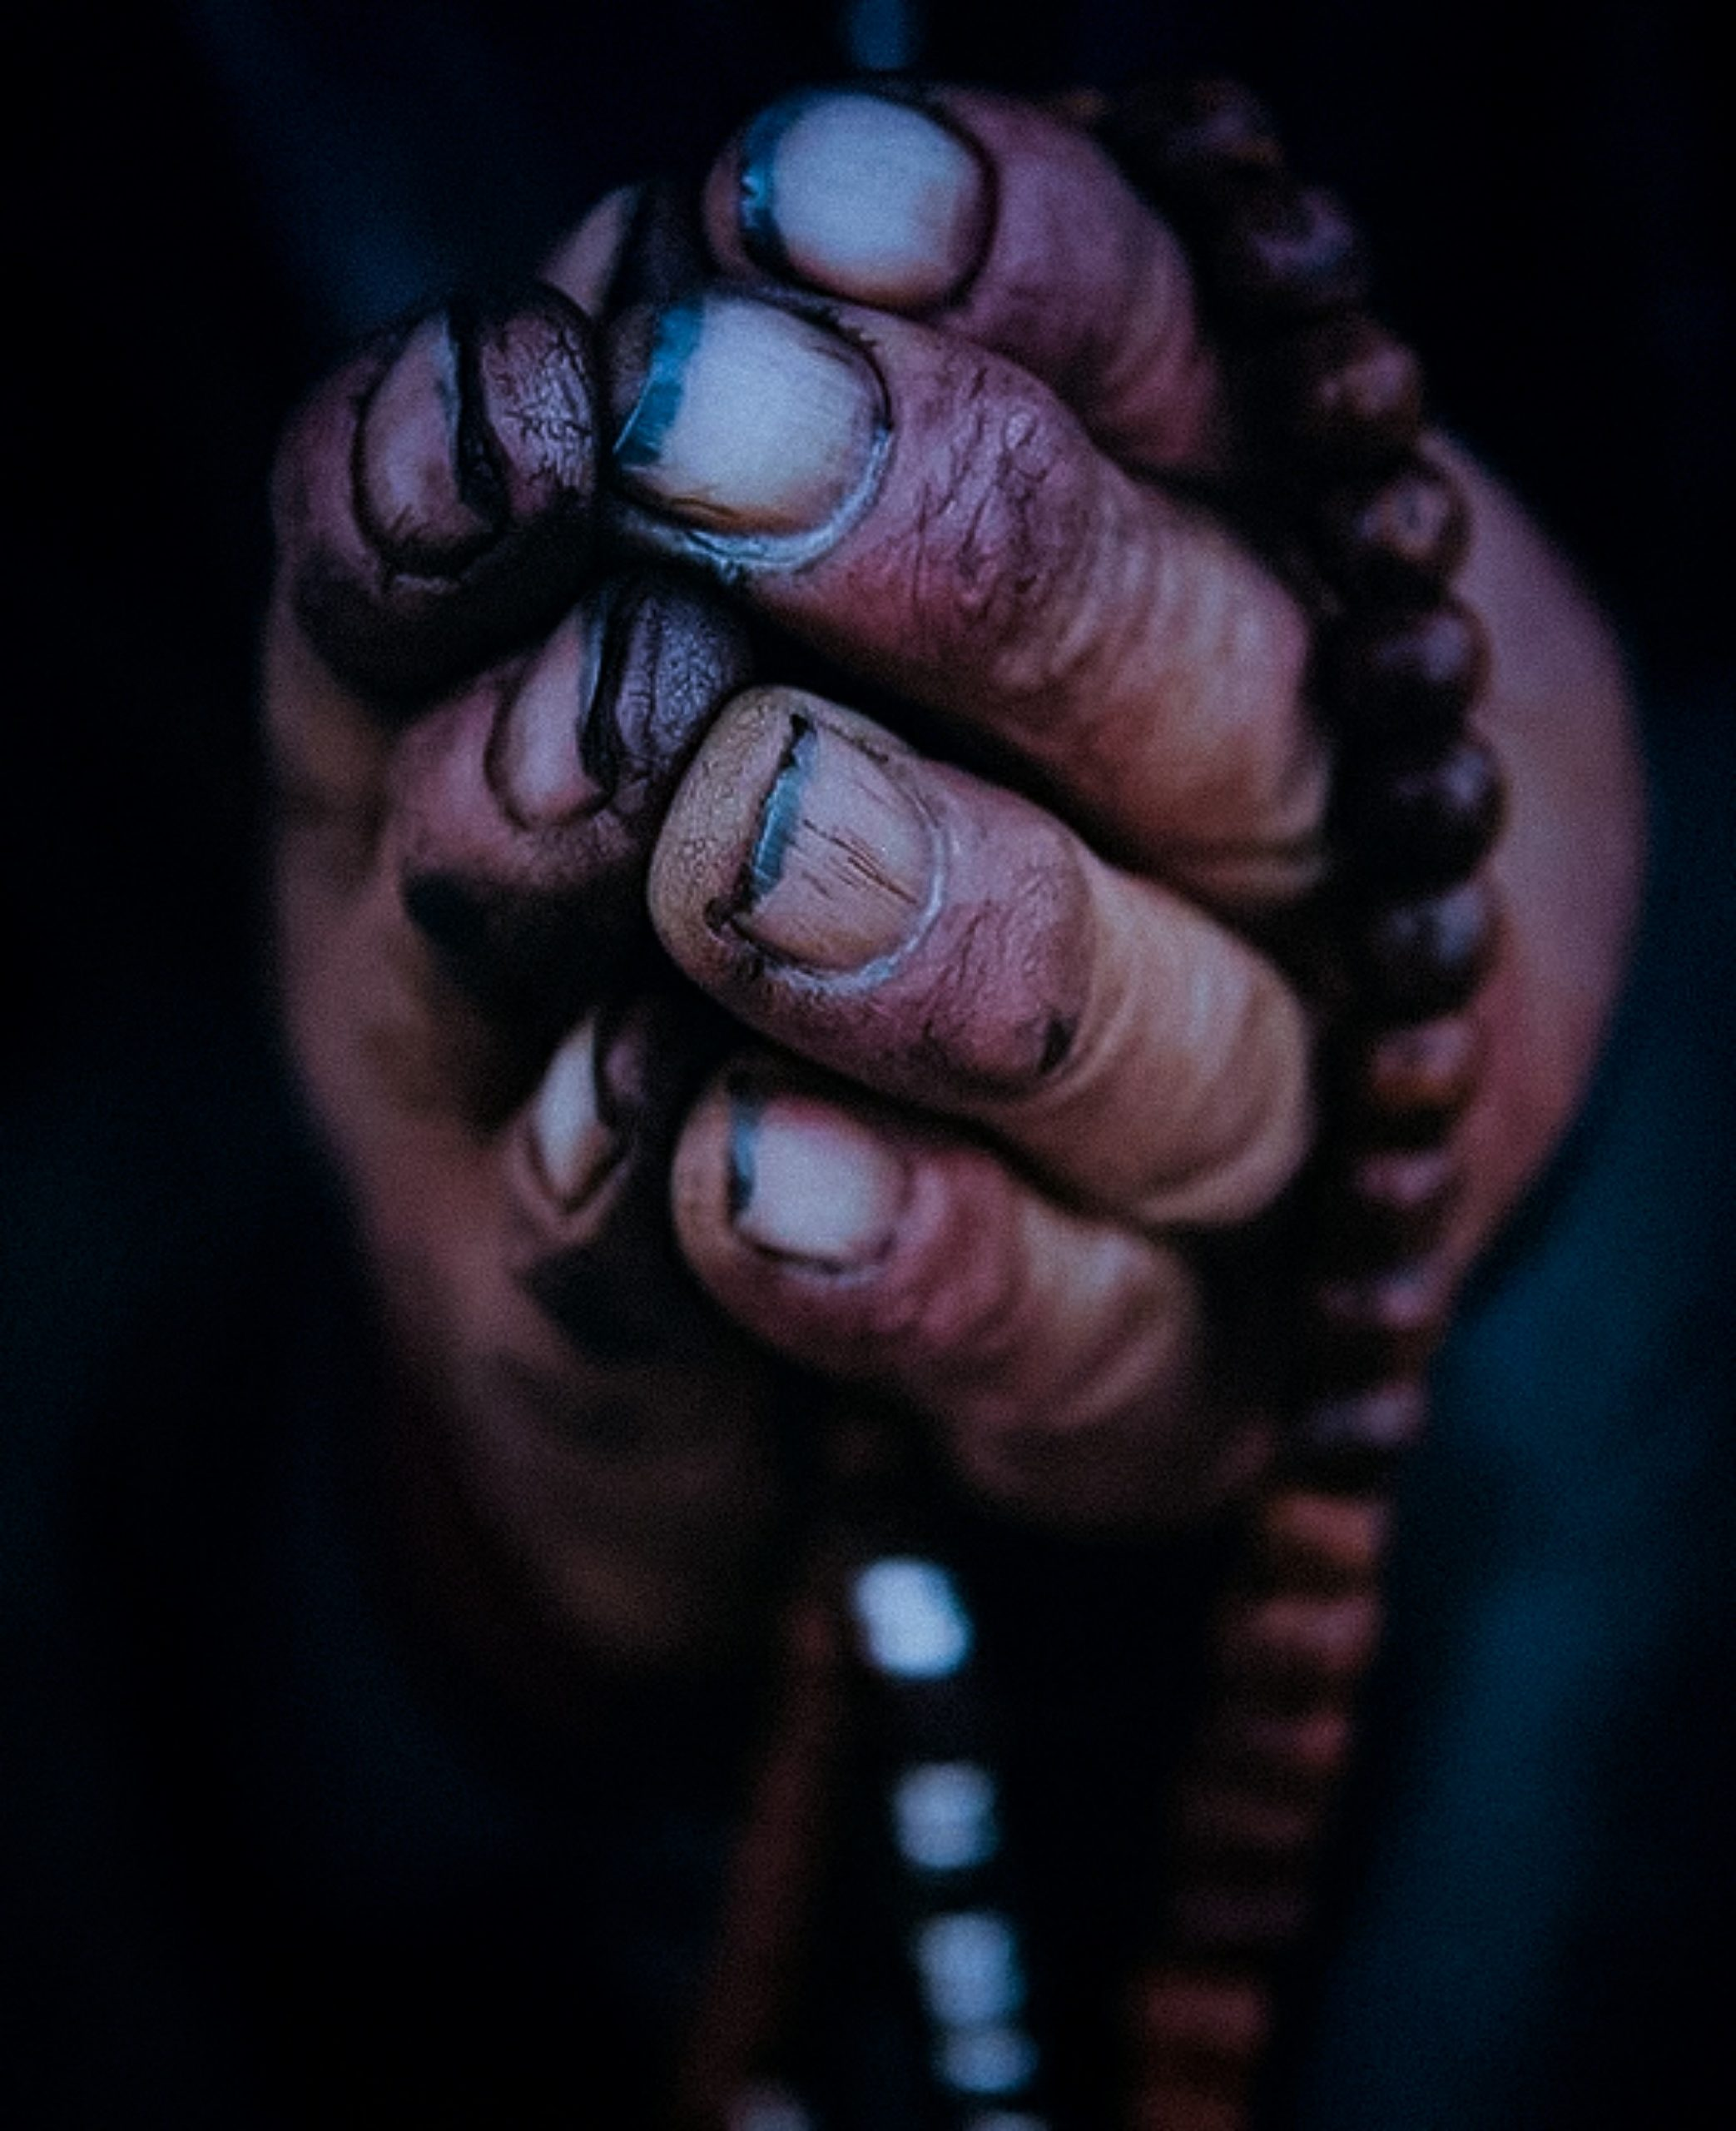 Worn out praying hands with rosary